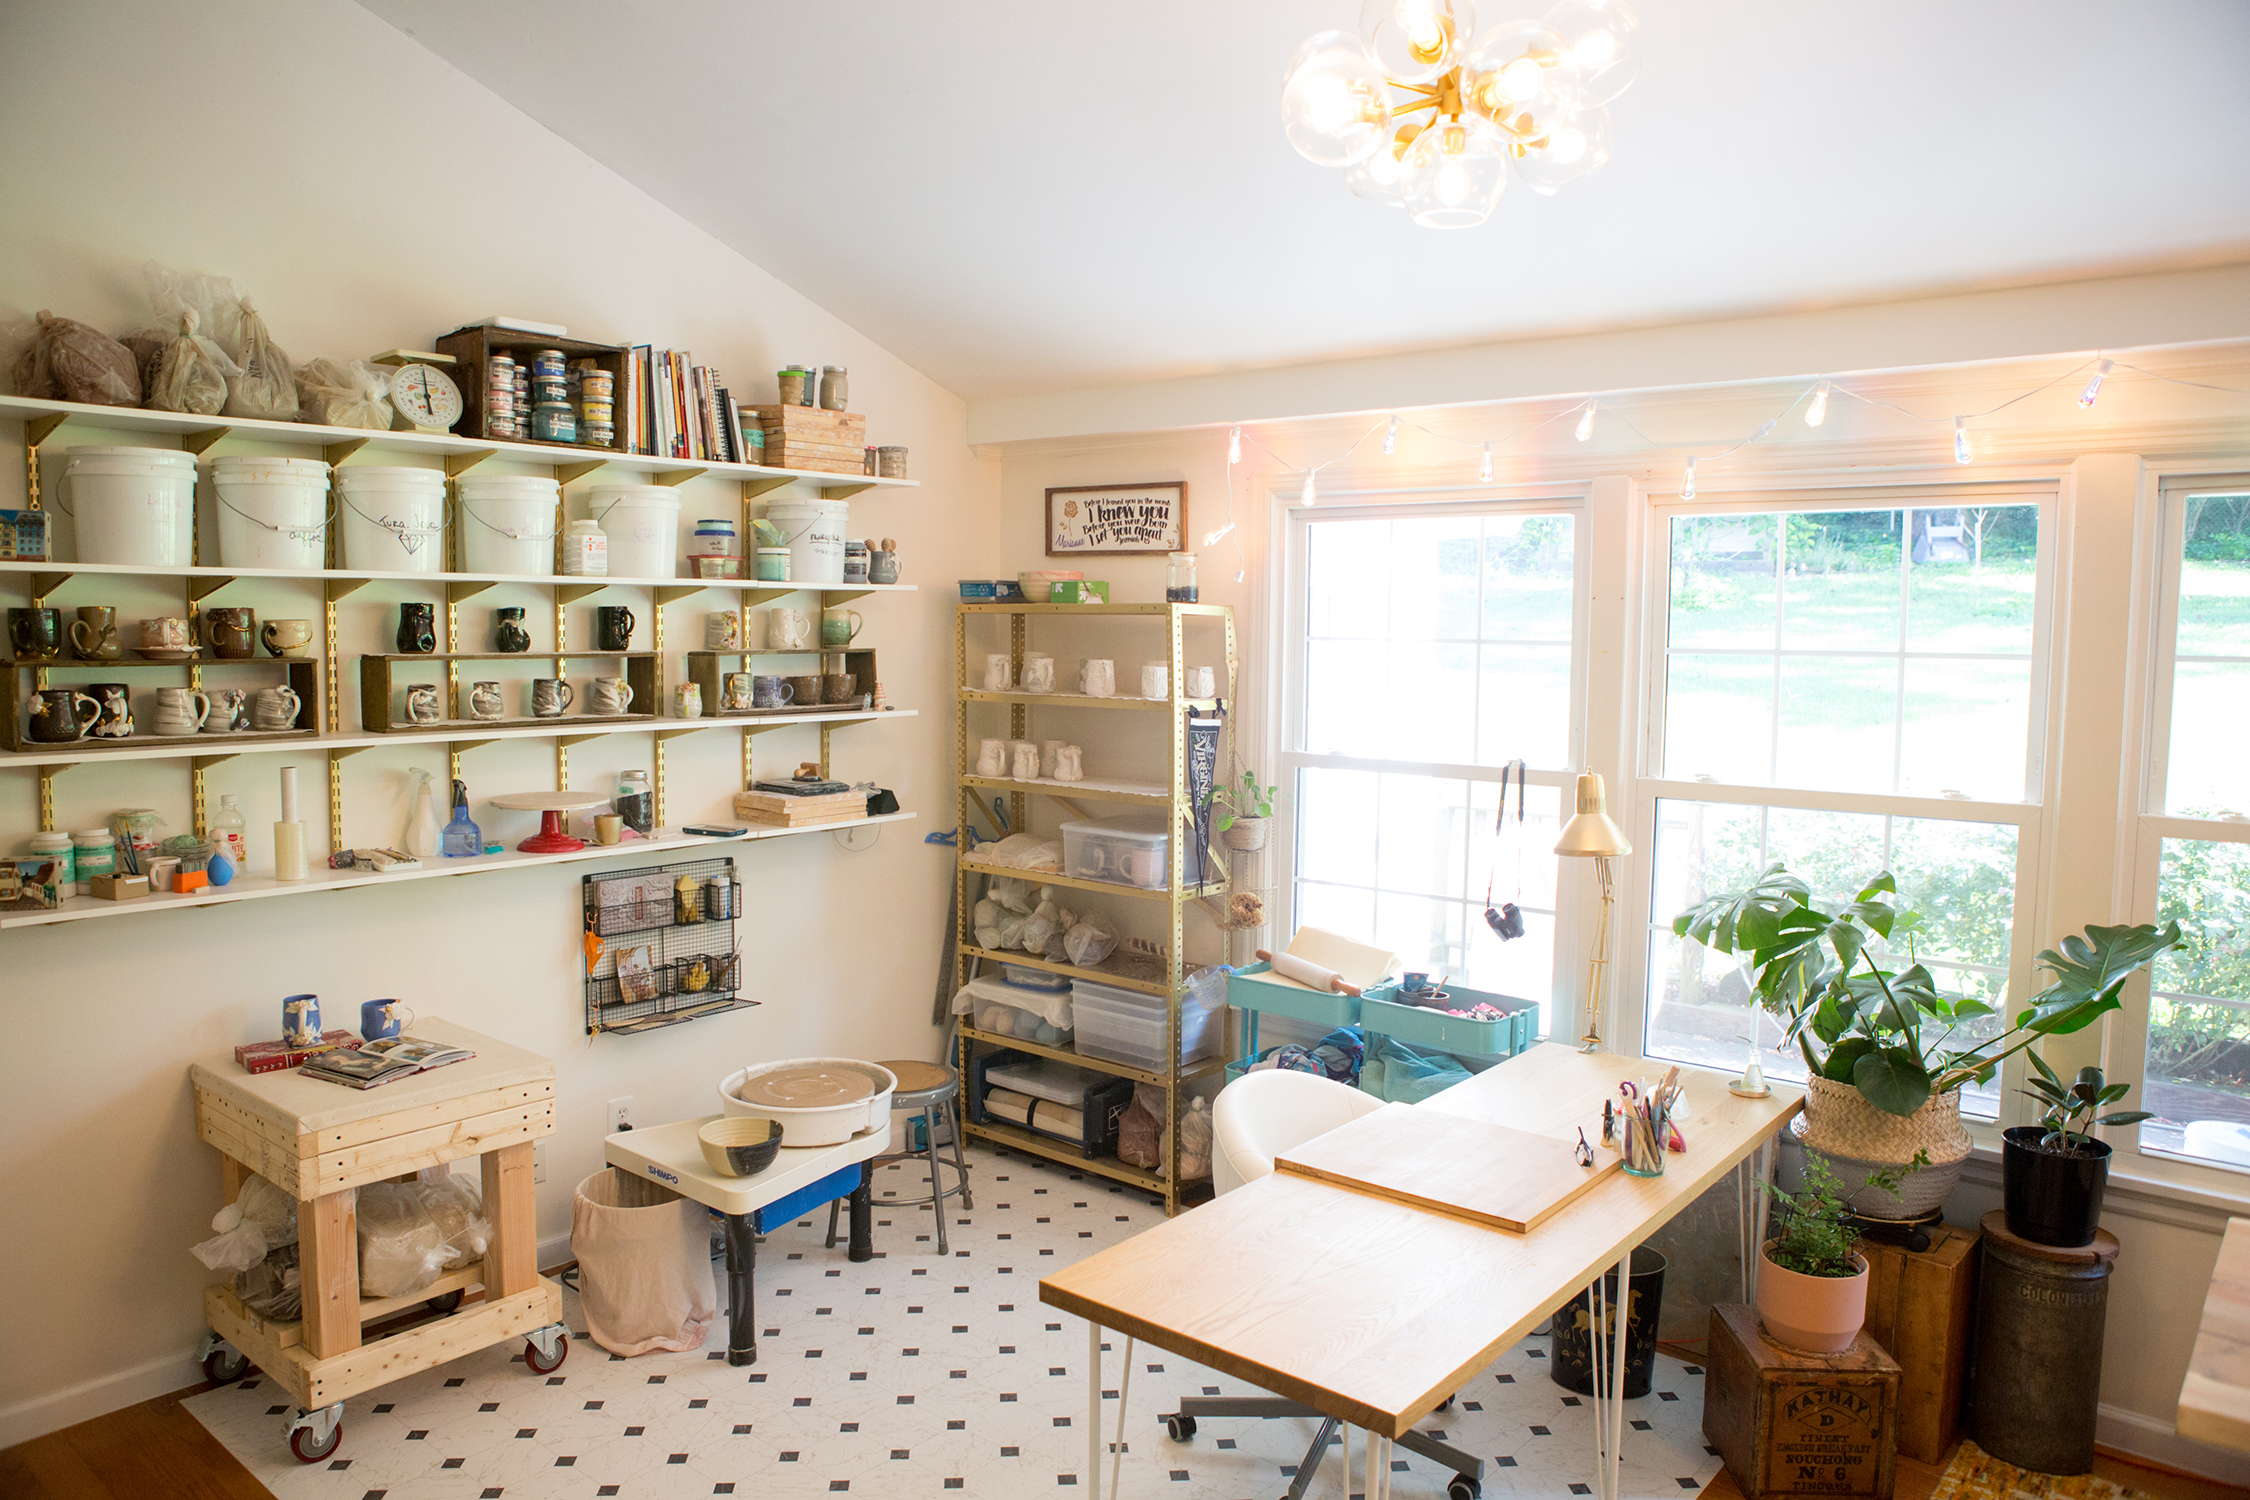 A haven for creatives - with all of the coffee and tea you want provided.